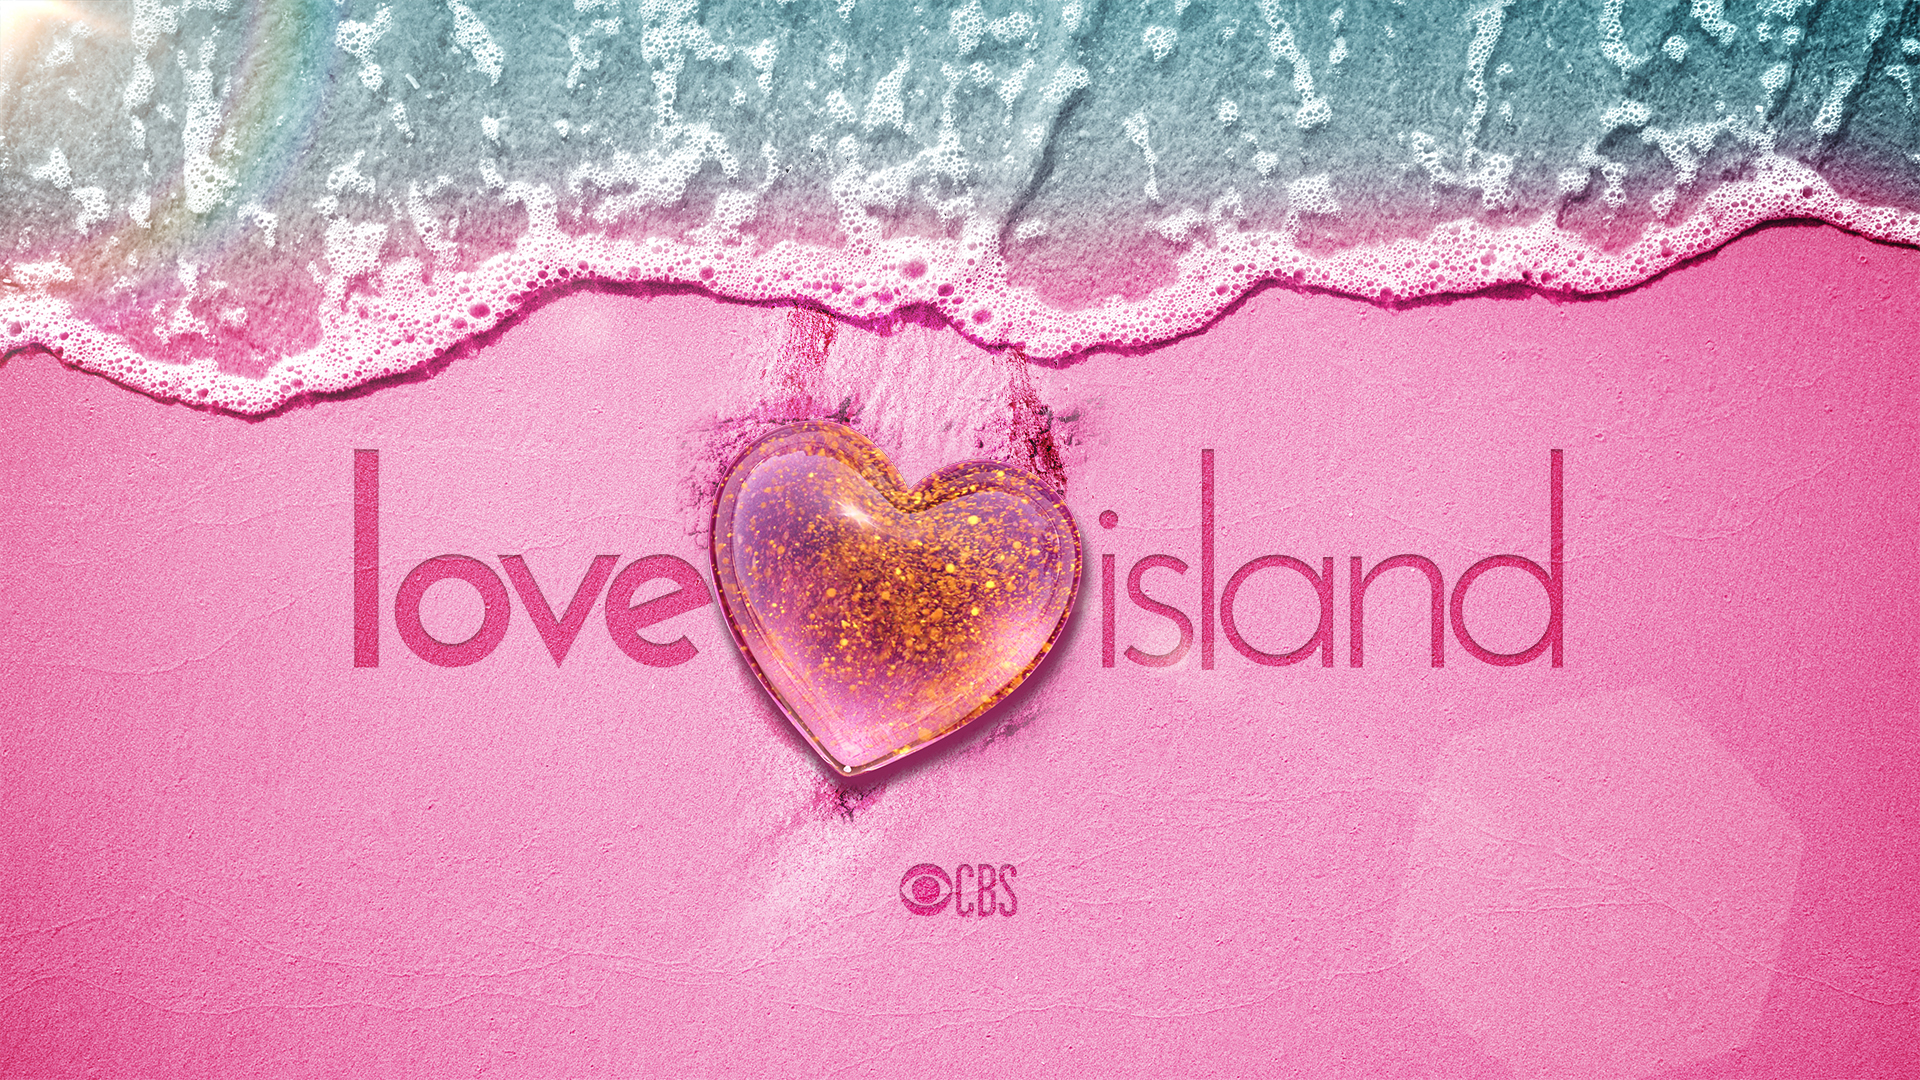 American viewers got their own 'LOVE ISLAND' experience this summer, to mixed results.